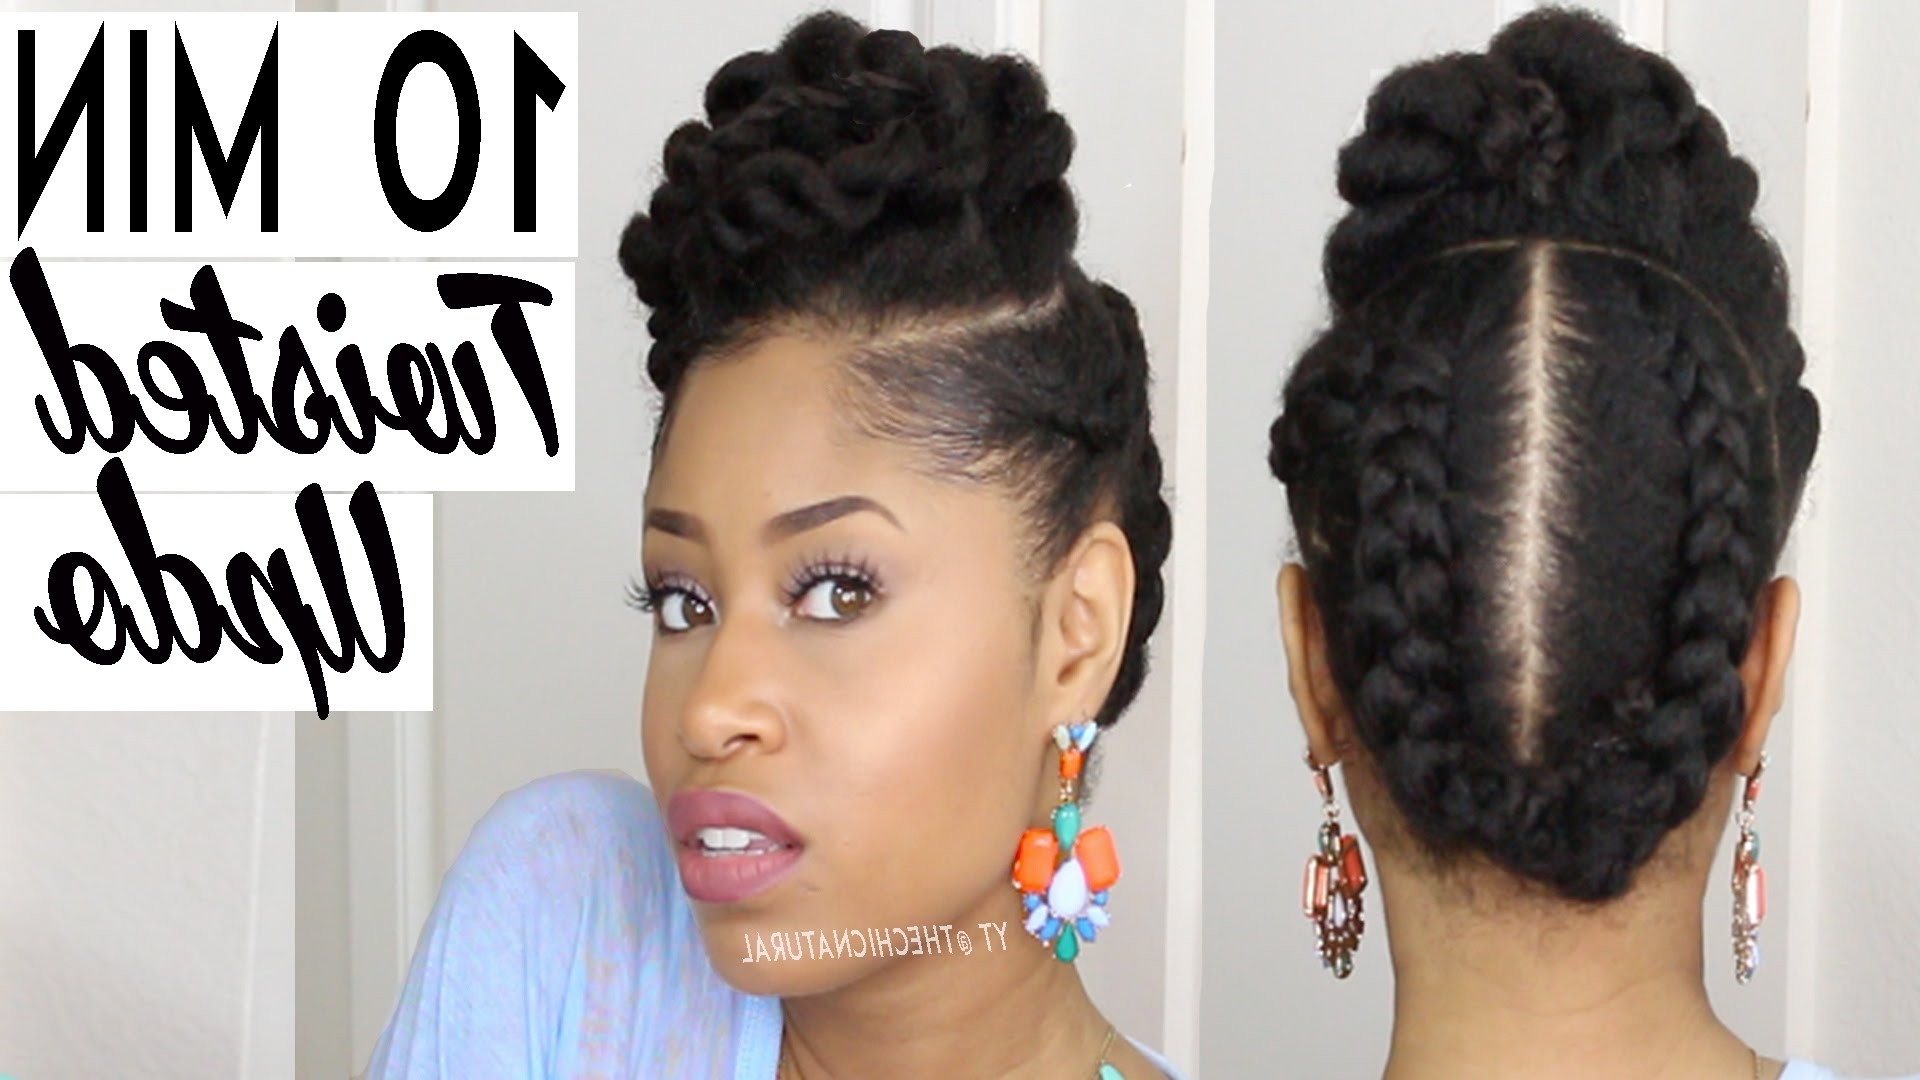 The 10 Minute Twisted Updo | Natural Hairstyle – Youtube Pertaining To Twisted Updo Hairstyles (View 4 of 15)